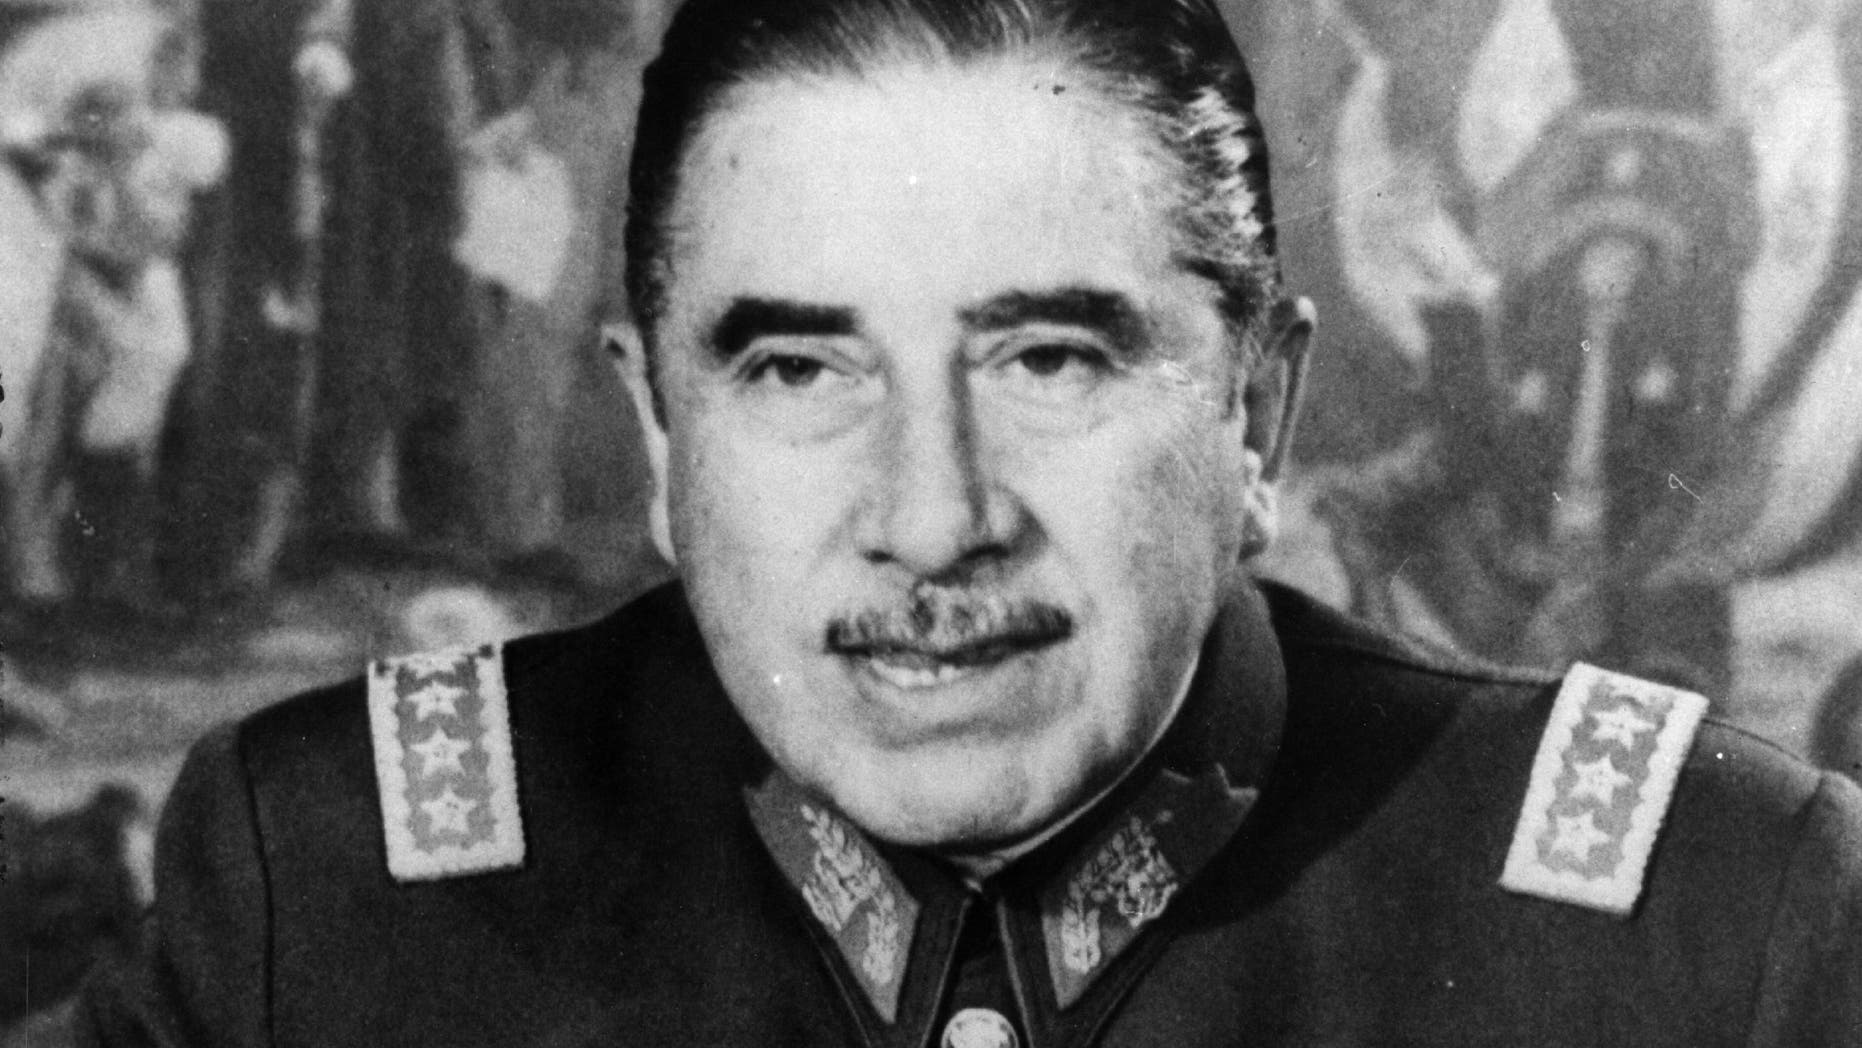 Chilean soldier and politician, Augusto Pinochet Ugarte.  In 1973 he led a coup which ousted, and resulted in the death of, the Marxist President, Salvador Allende. Pinochet then took over the presidency.   (Photo by Keystone/Getty Images)